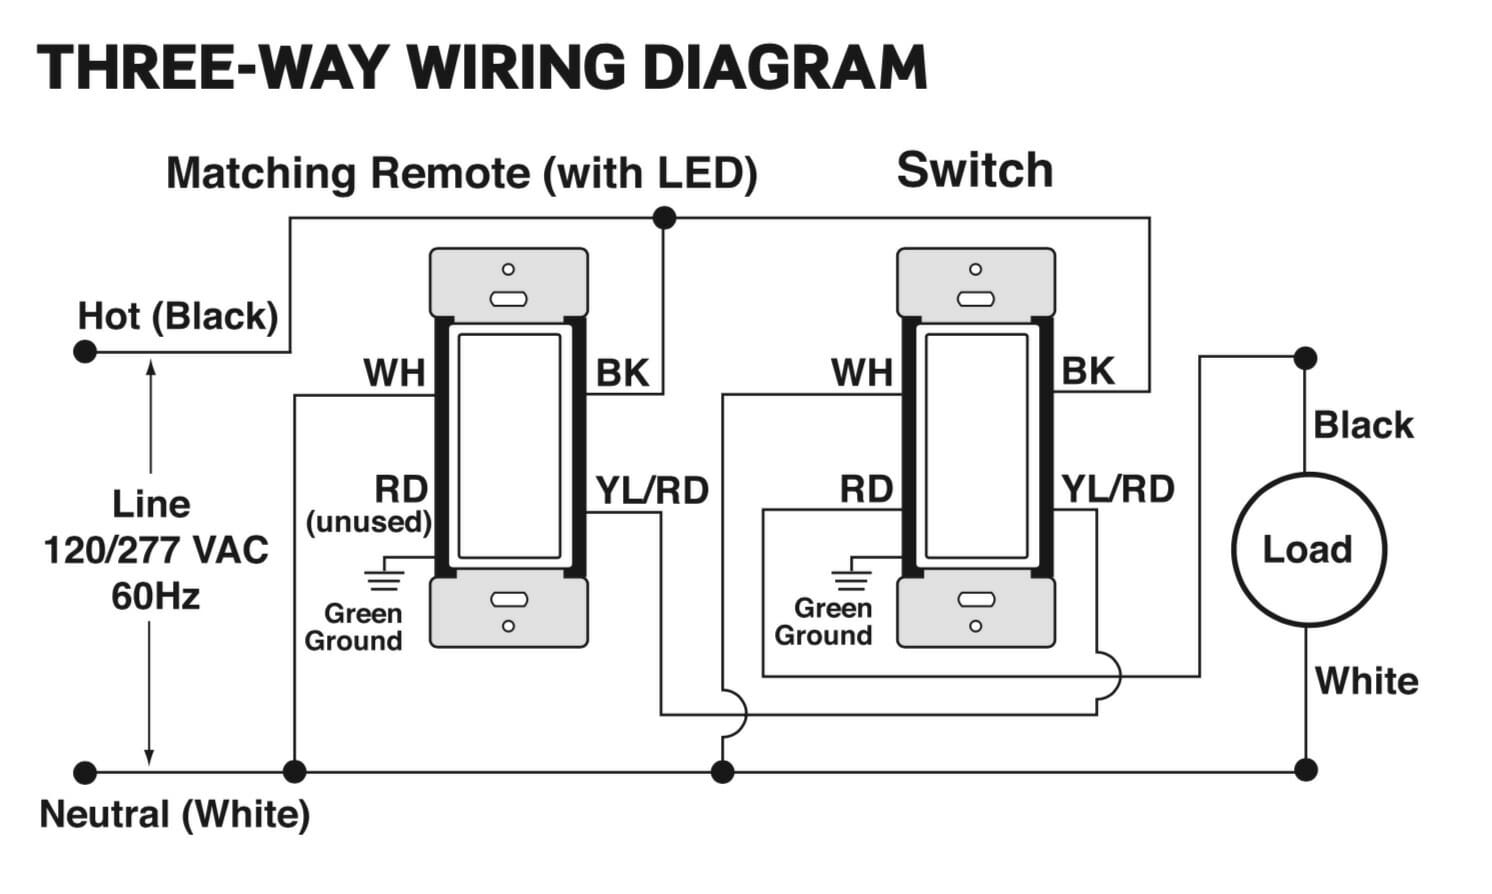 3 Way Wiring Diagram from michaelkummer.com